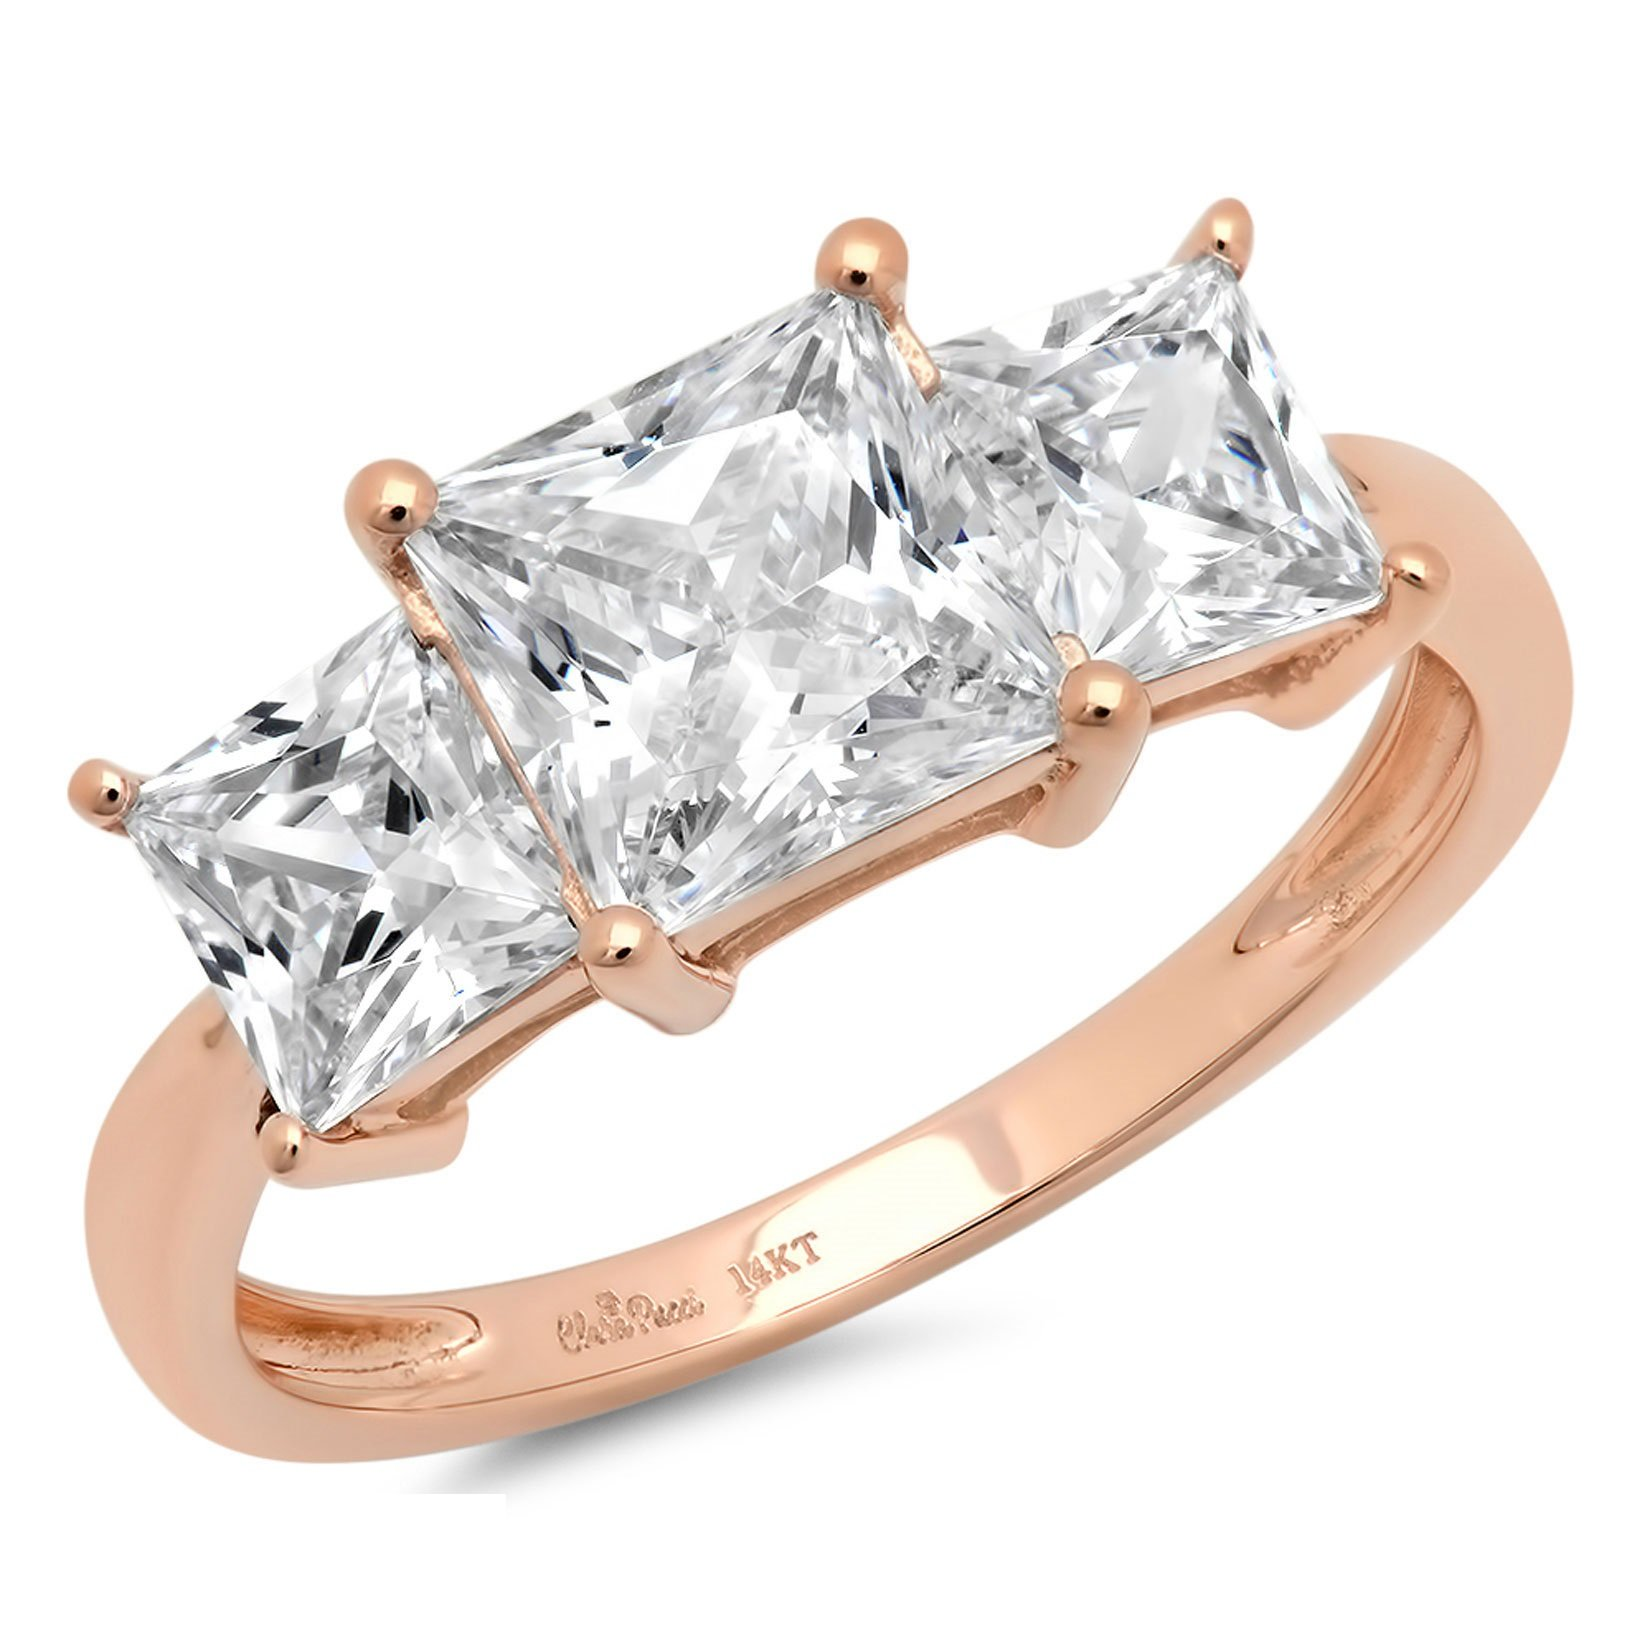 Clara Pucci 3.0 CT Three Stone Princess Cut Simulated Diamond CZ Solitaire Ring Engagement Wedding Band 14K Rose Gold, Size 10.75 by Clara Pucci